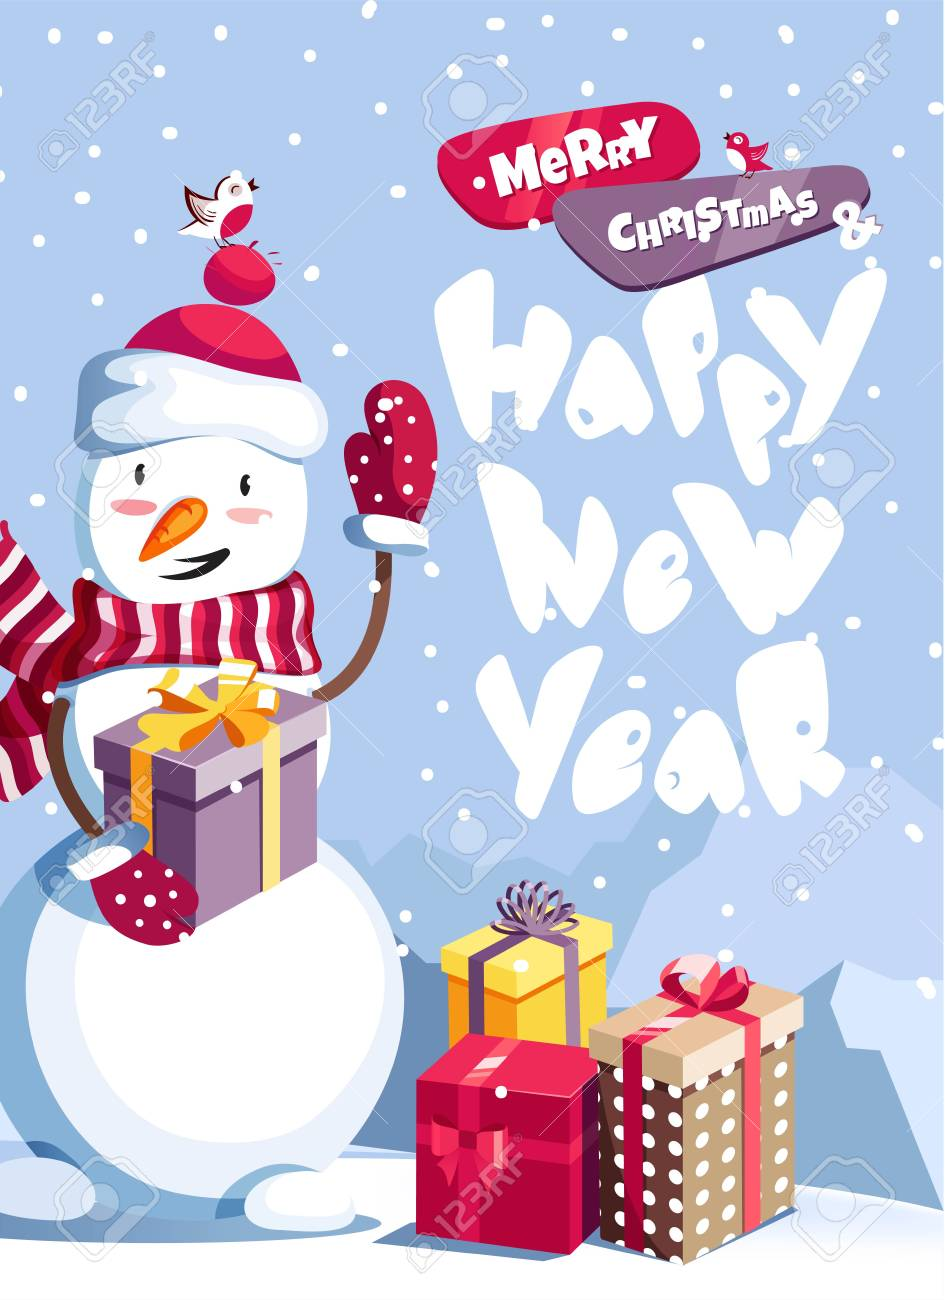 merry christmas and happy new year vector background with cute snowman and typographic design winter